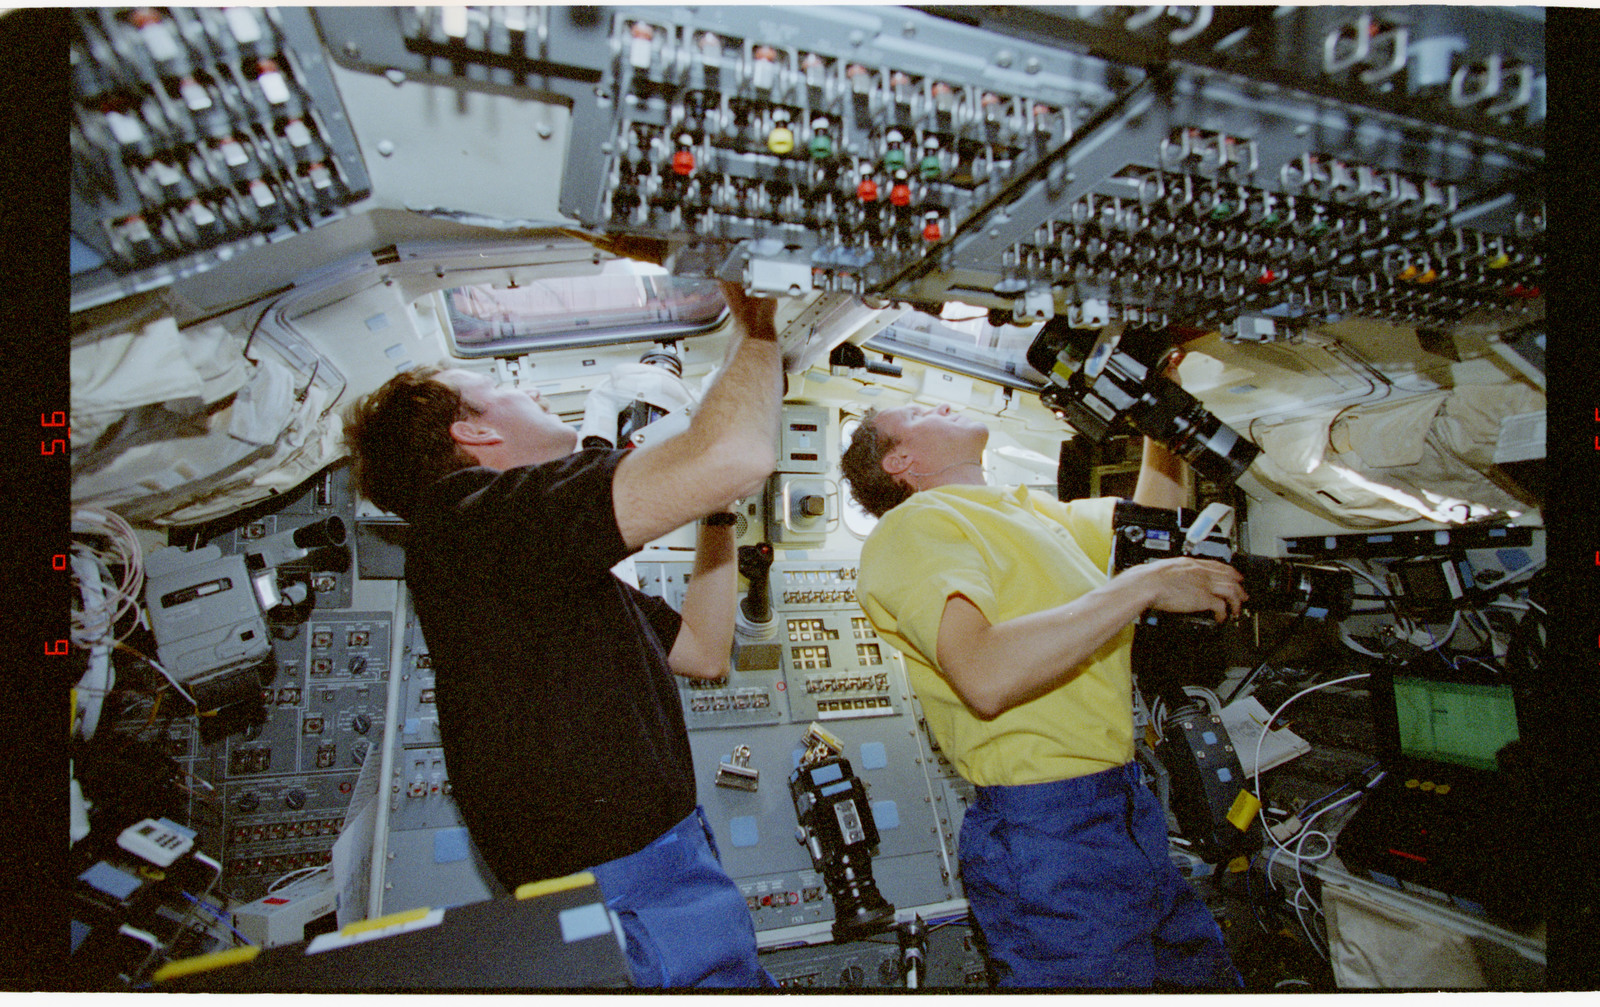 STS080-310-012 - STS-080 - Crewmembers photograph the Earth from the shuttle flight deck